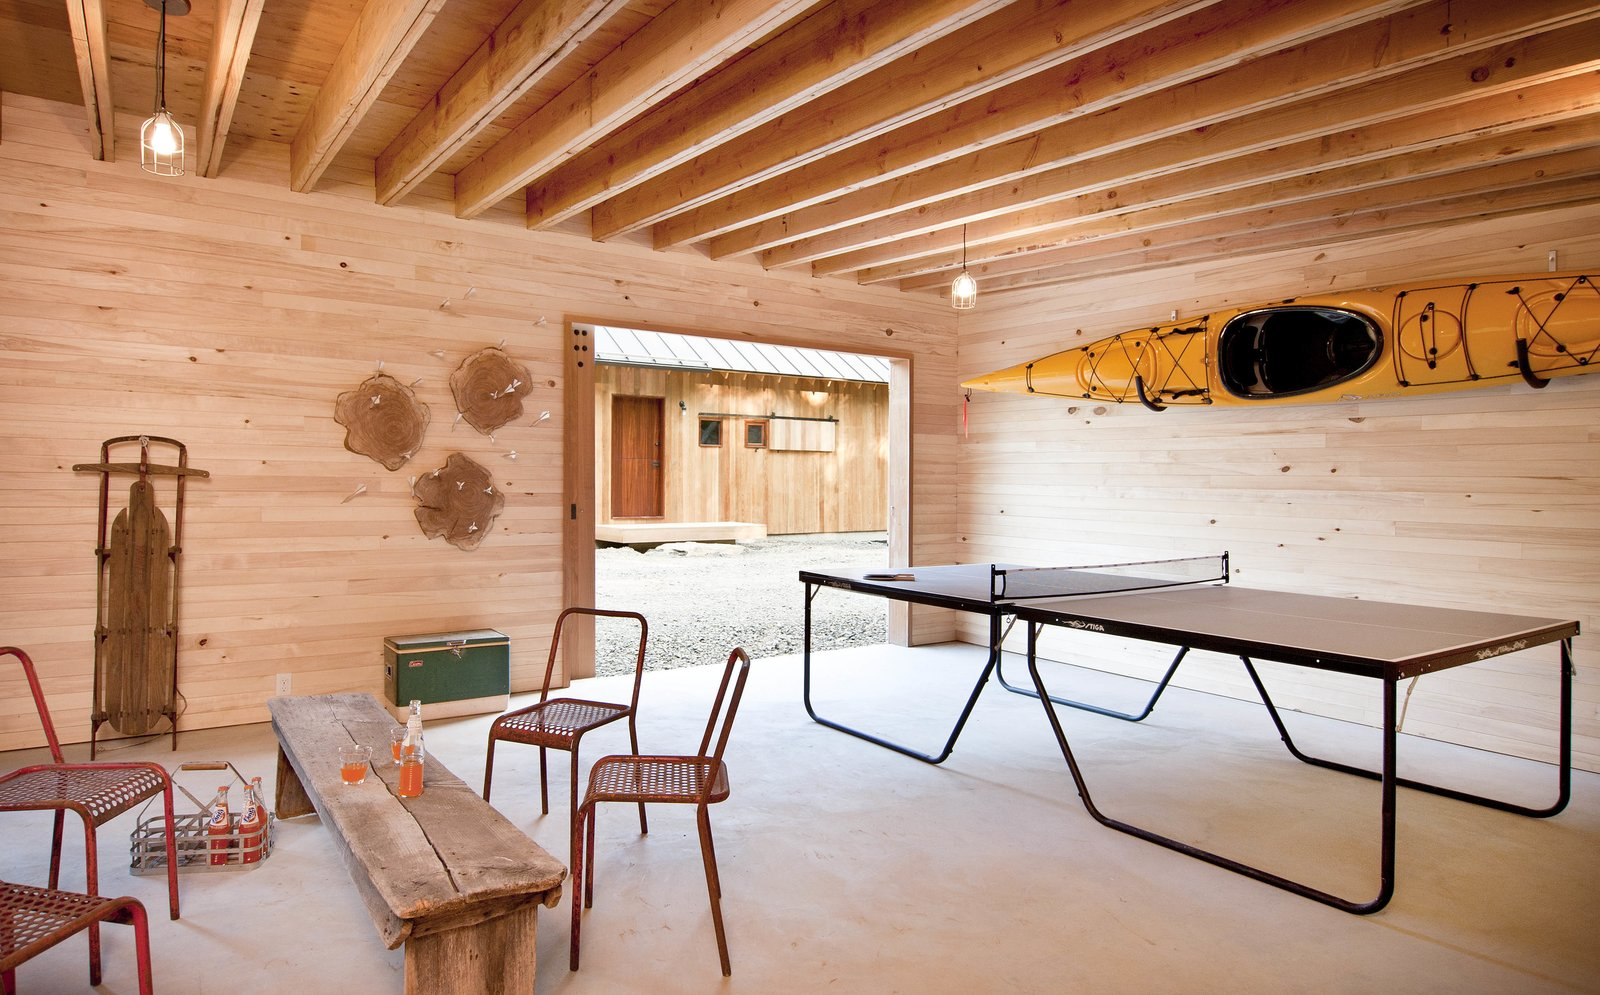 types of wood furniture. Garage, Garage Conversion Room Type, And Detached Type How To Recognize Different Types Of Wood Furniture N